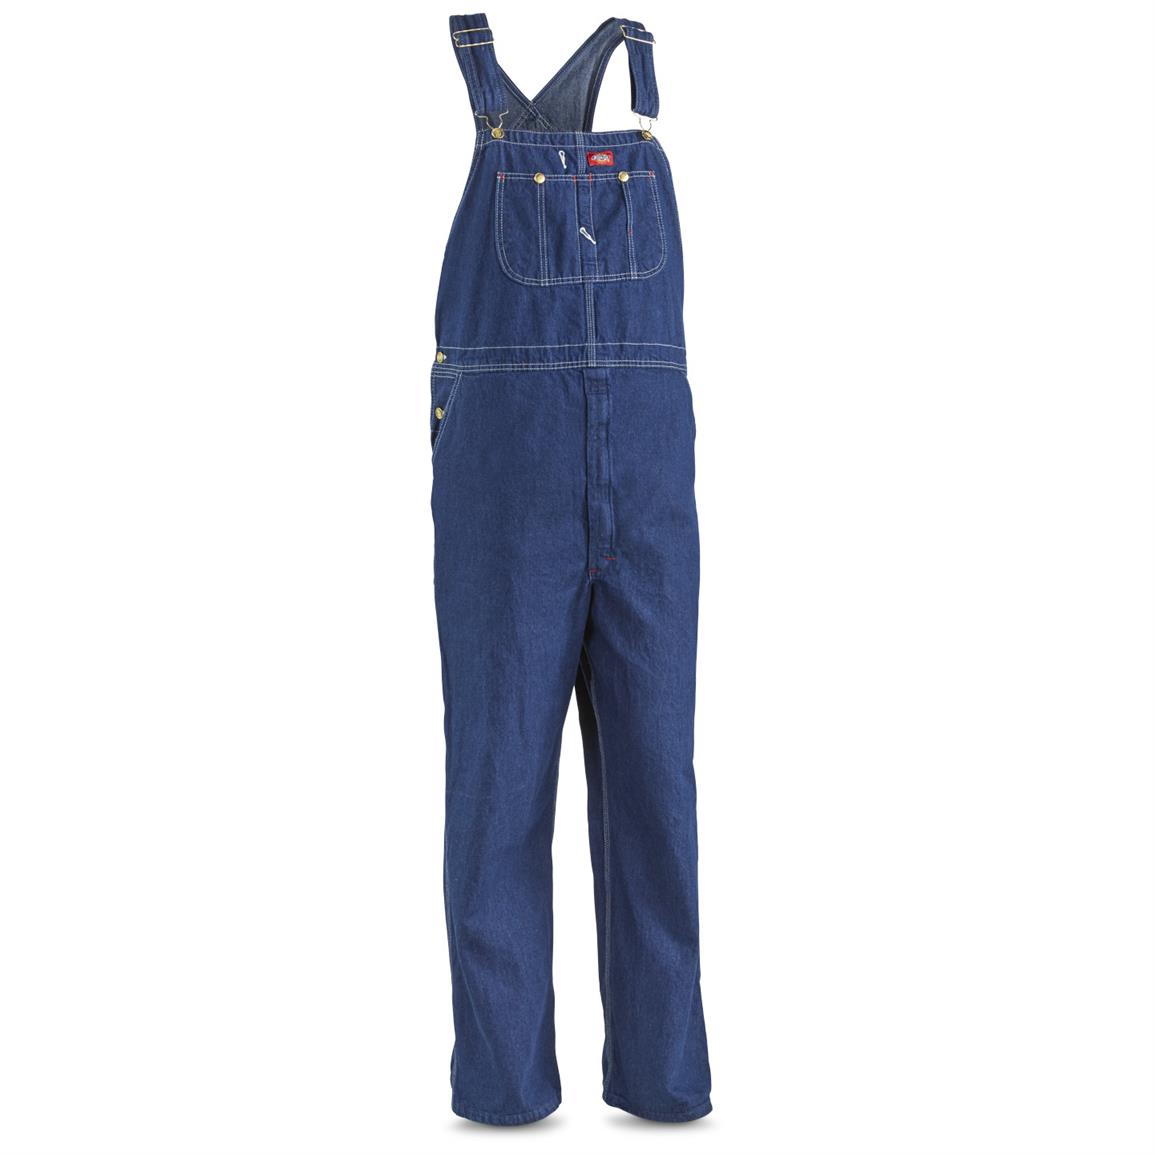 Dickies Men's Factory Second Bib Overalls, Rinsed Navy